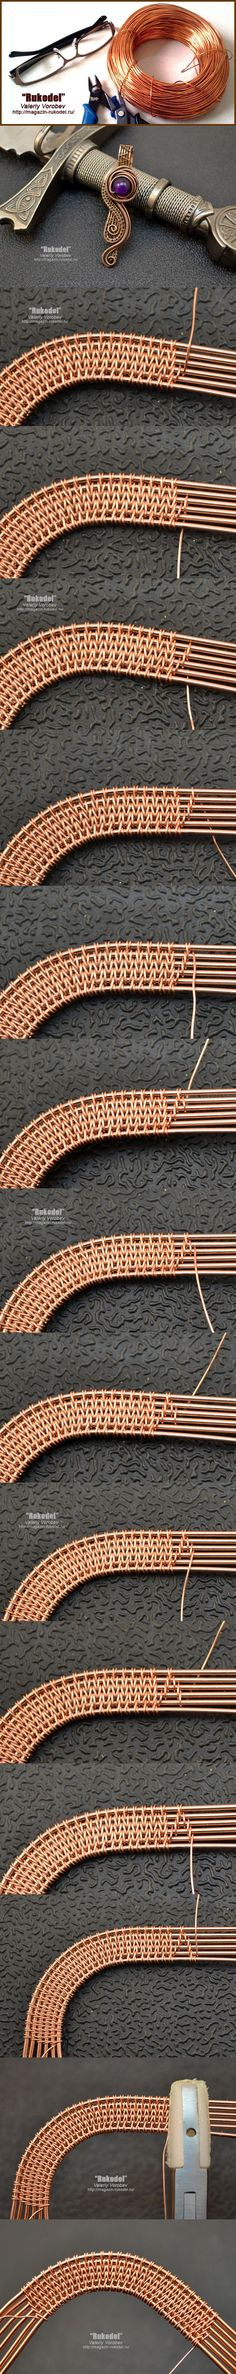 Photo tute #Wire #Jewelry #Tutorials